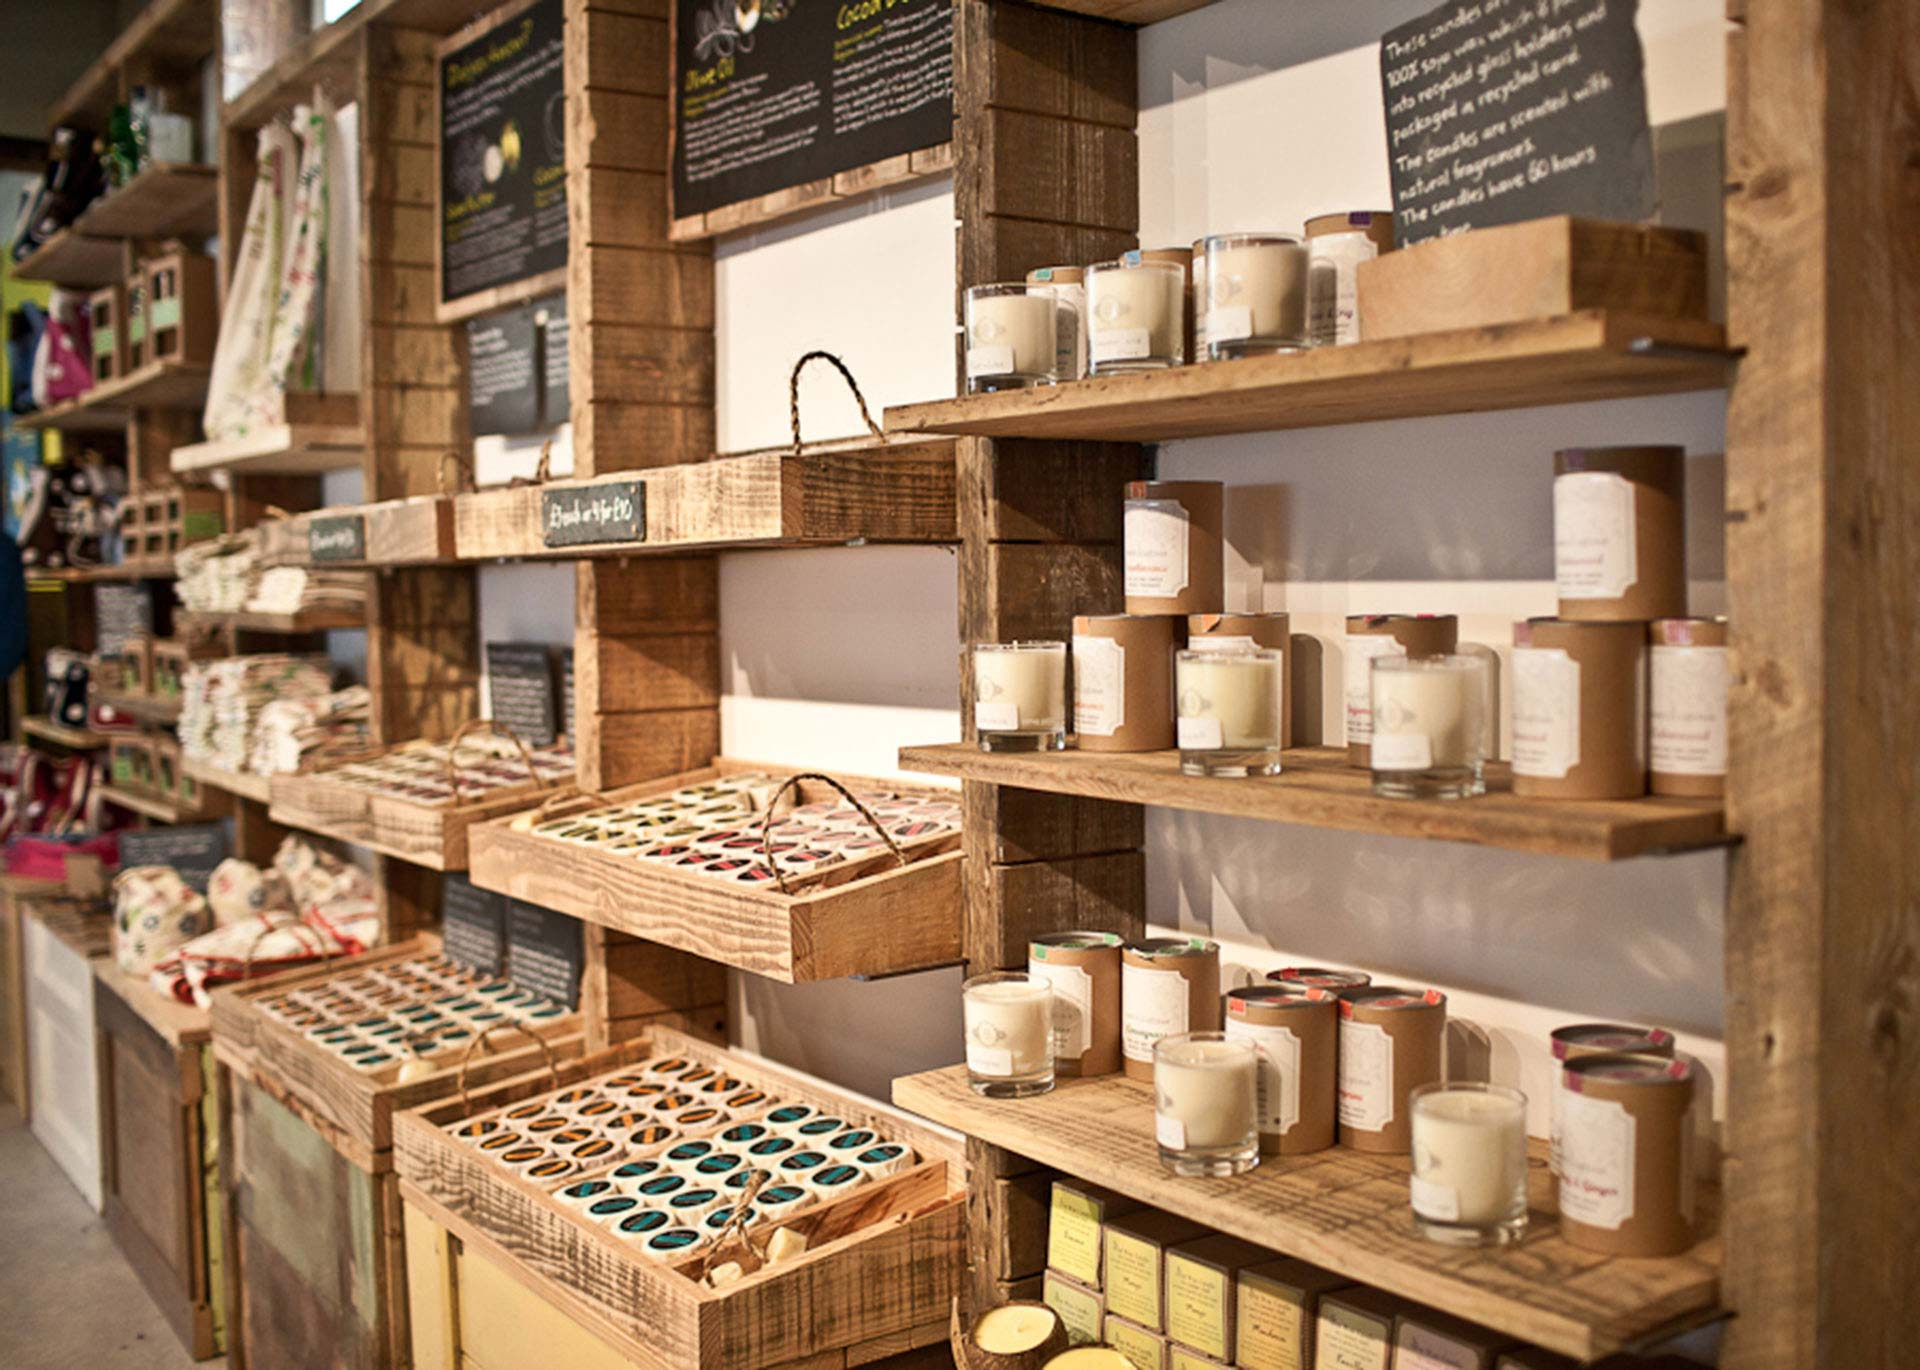 Reclaimed timber shelves designed to display merchandise at Eden Project